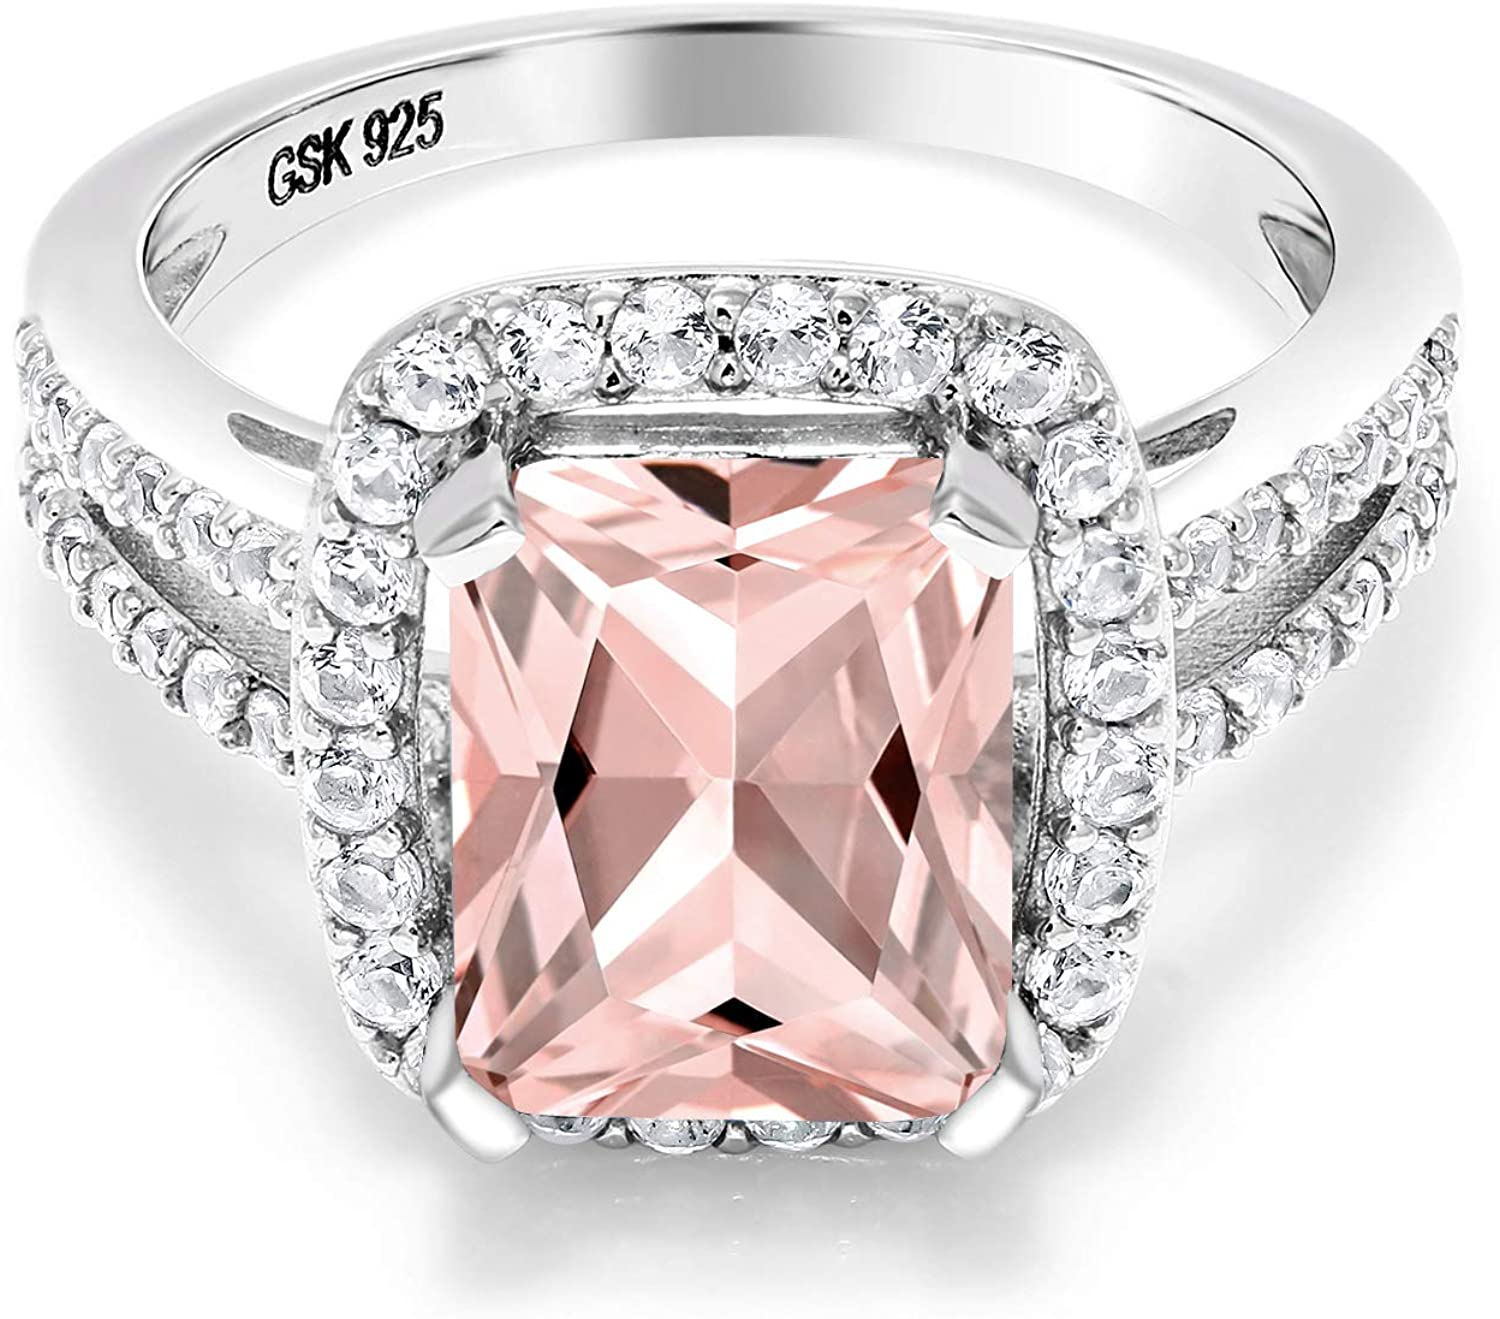 Gem Stone King 925 Sterling Outlet SALE Tulsa Mall Peach Silver Morganite Simulated Wom